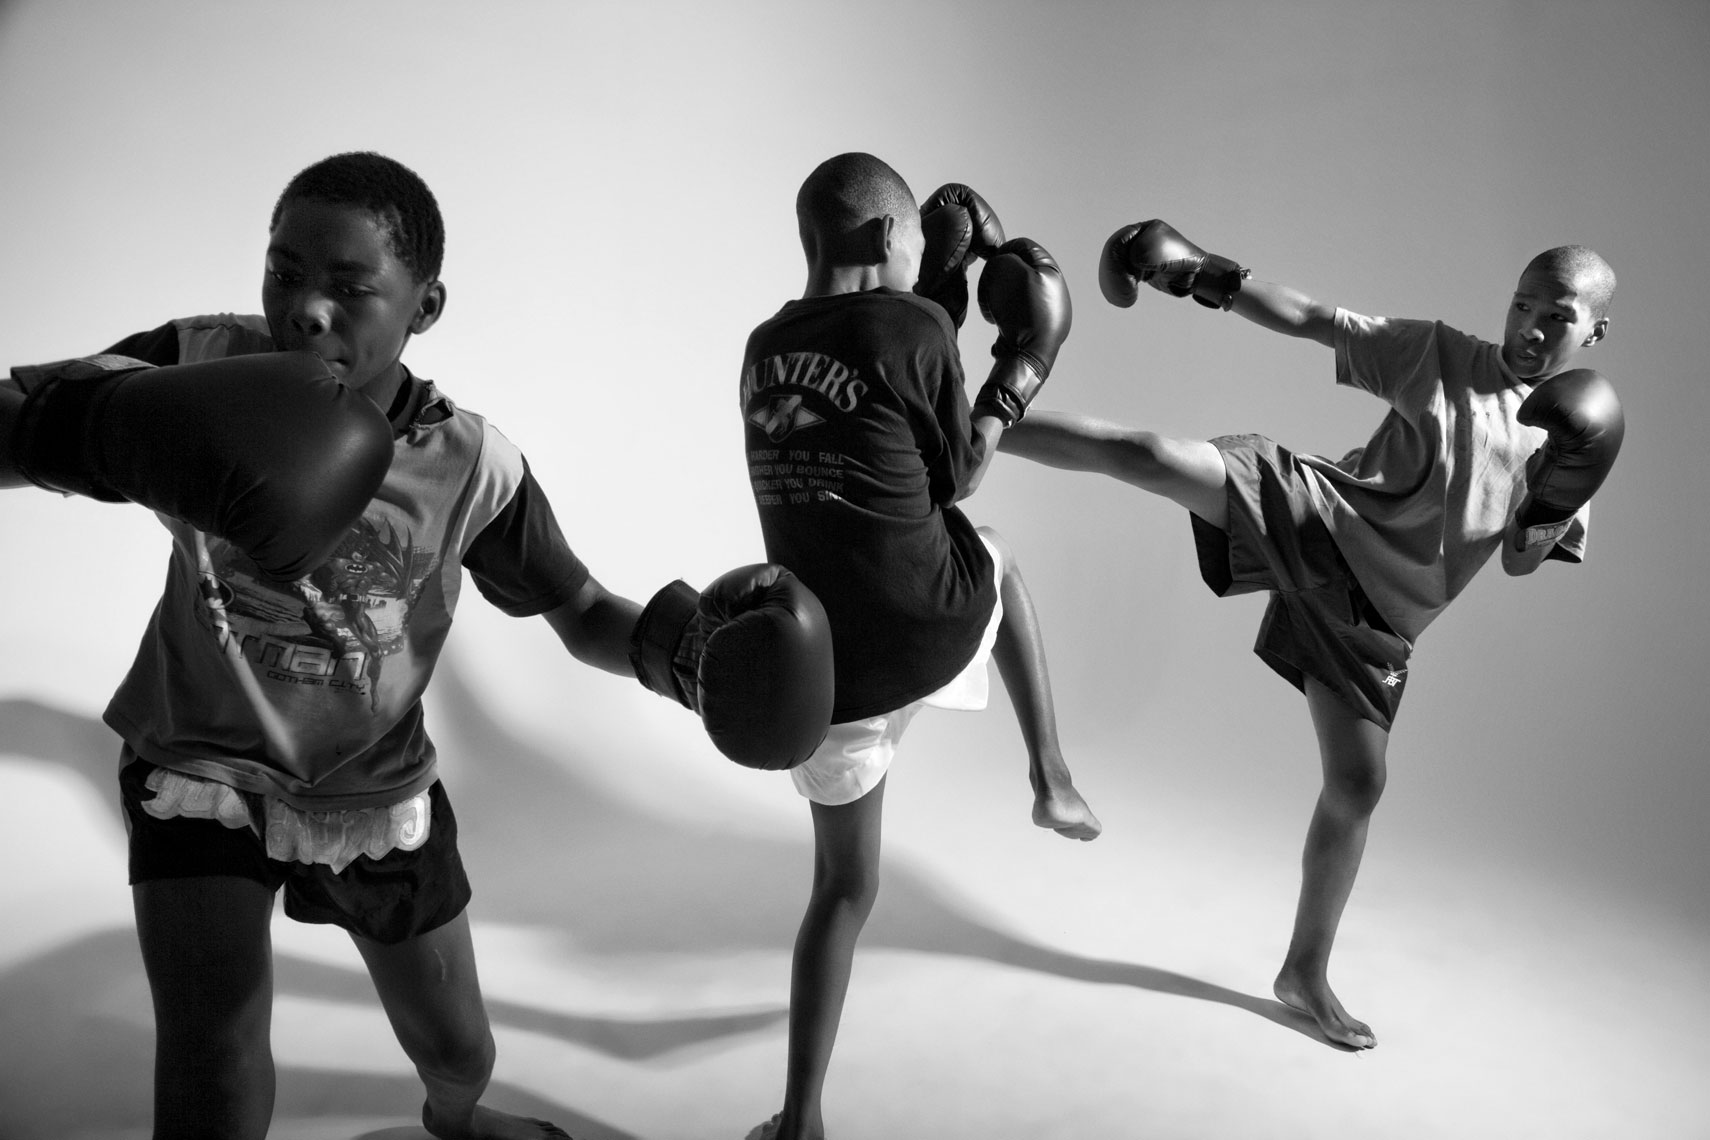 Children boxing in South Africa